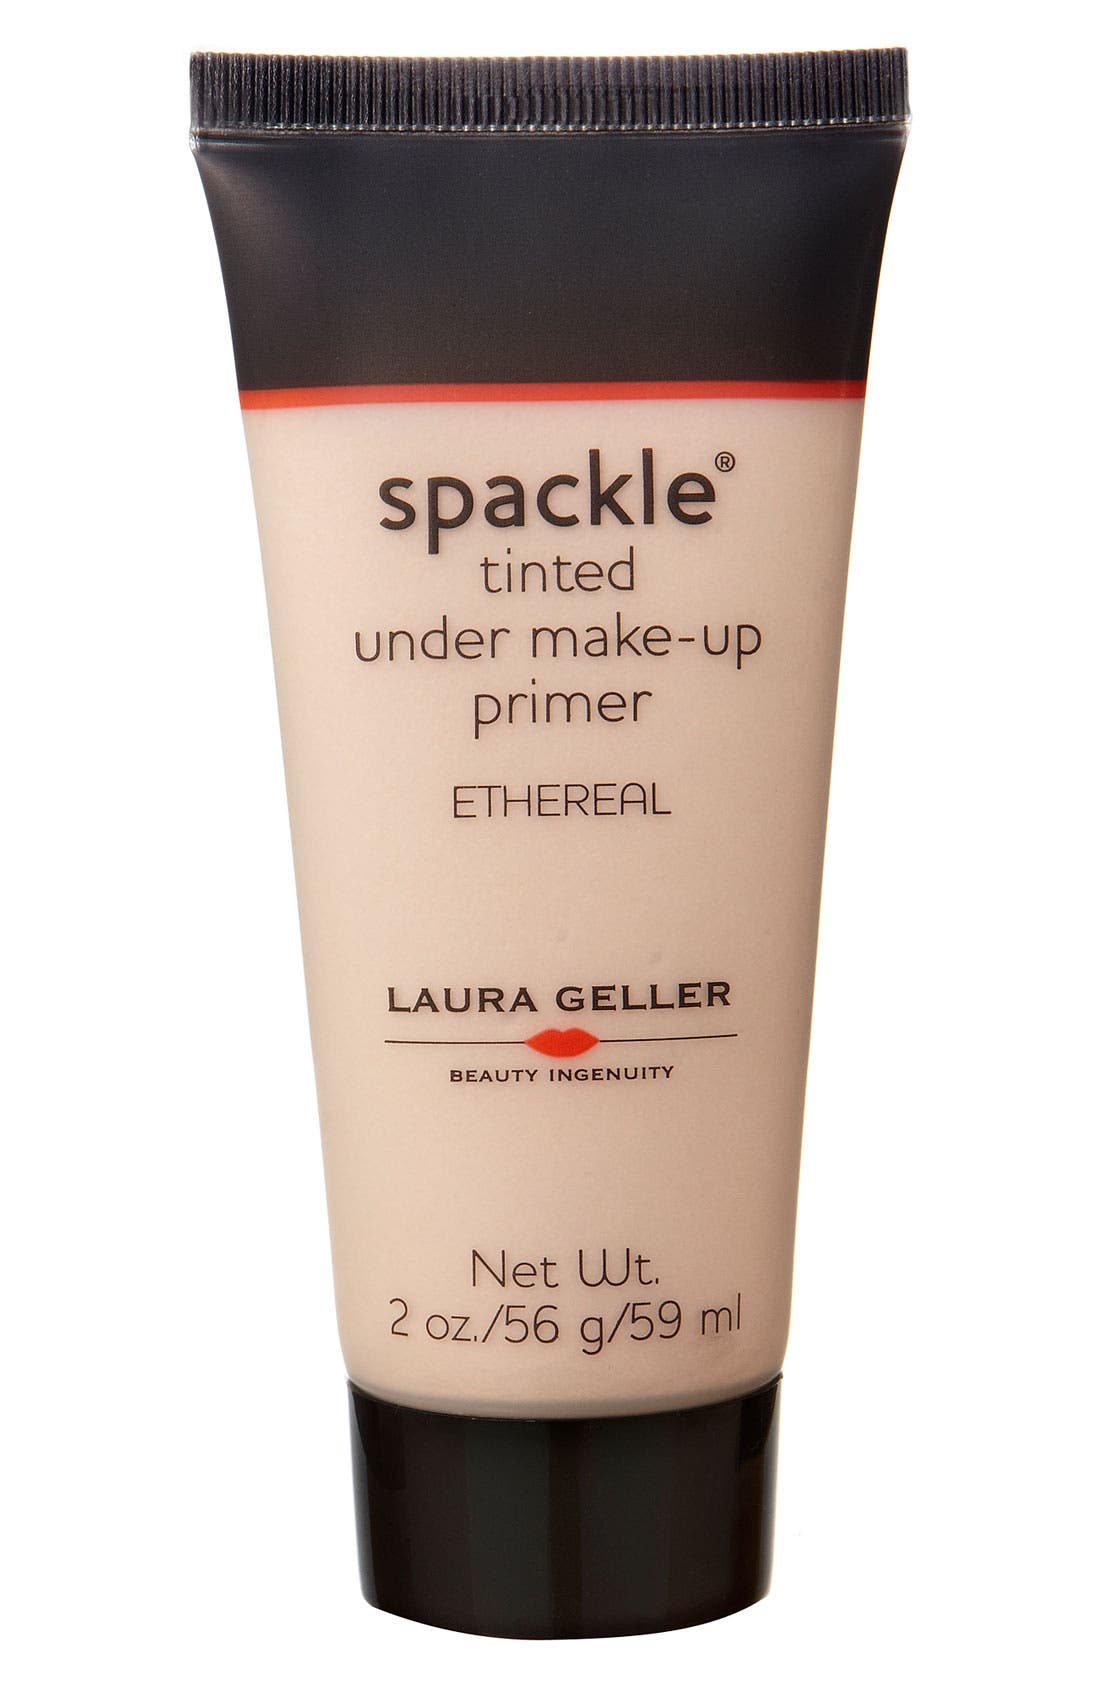 Laura Geller Beauty 'Spackle® - Ethereal' Tinted Under Make-Up Primer